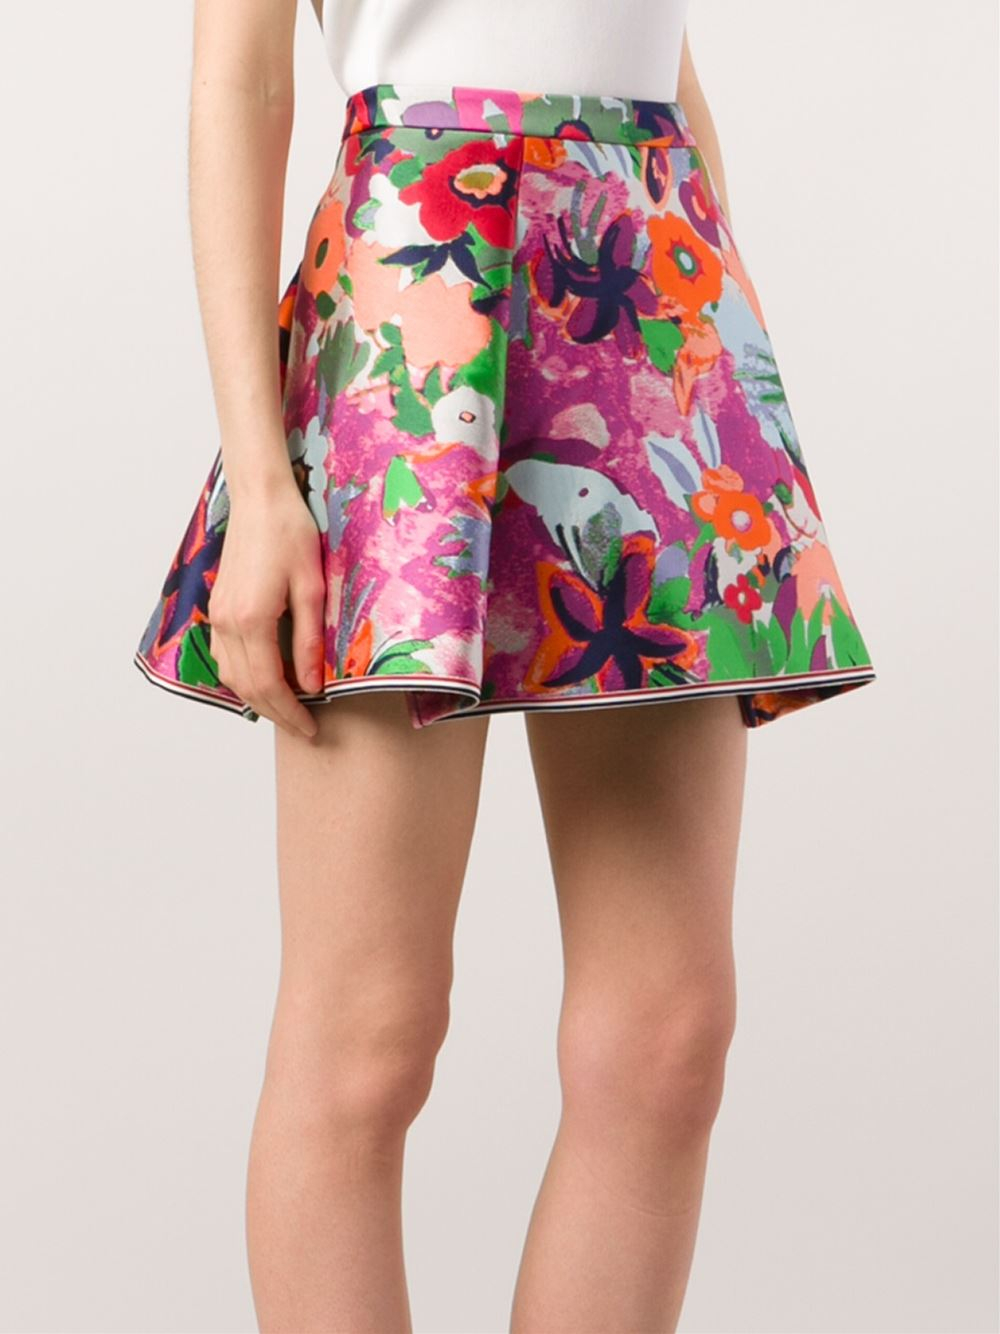 floral pleated skirt images